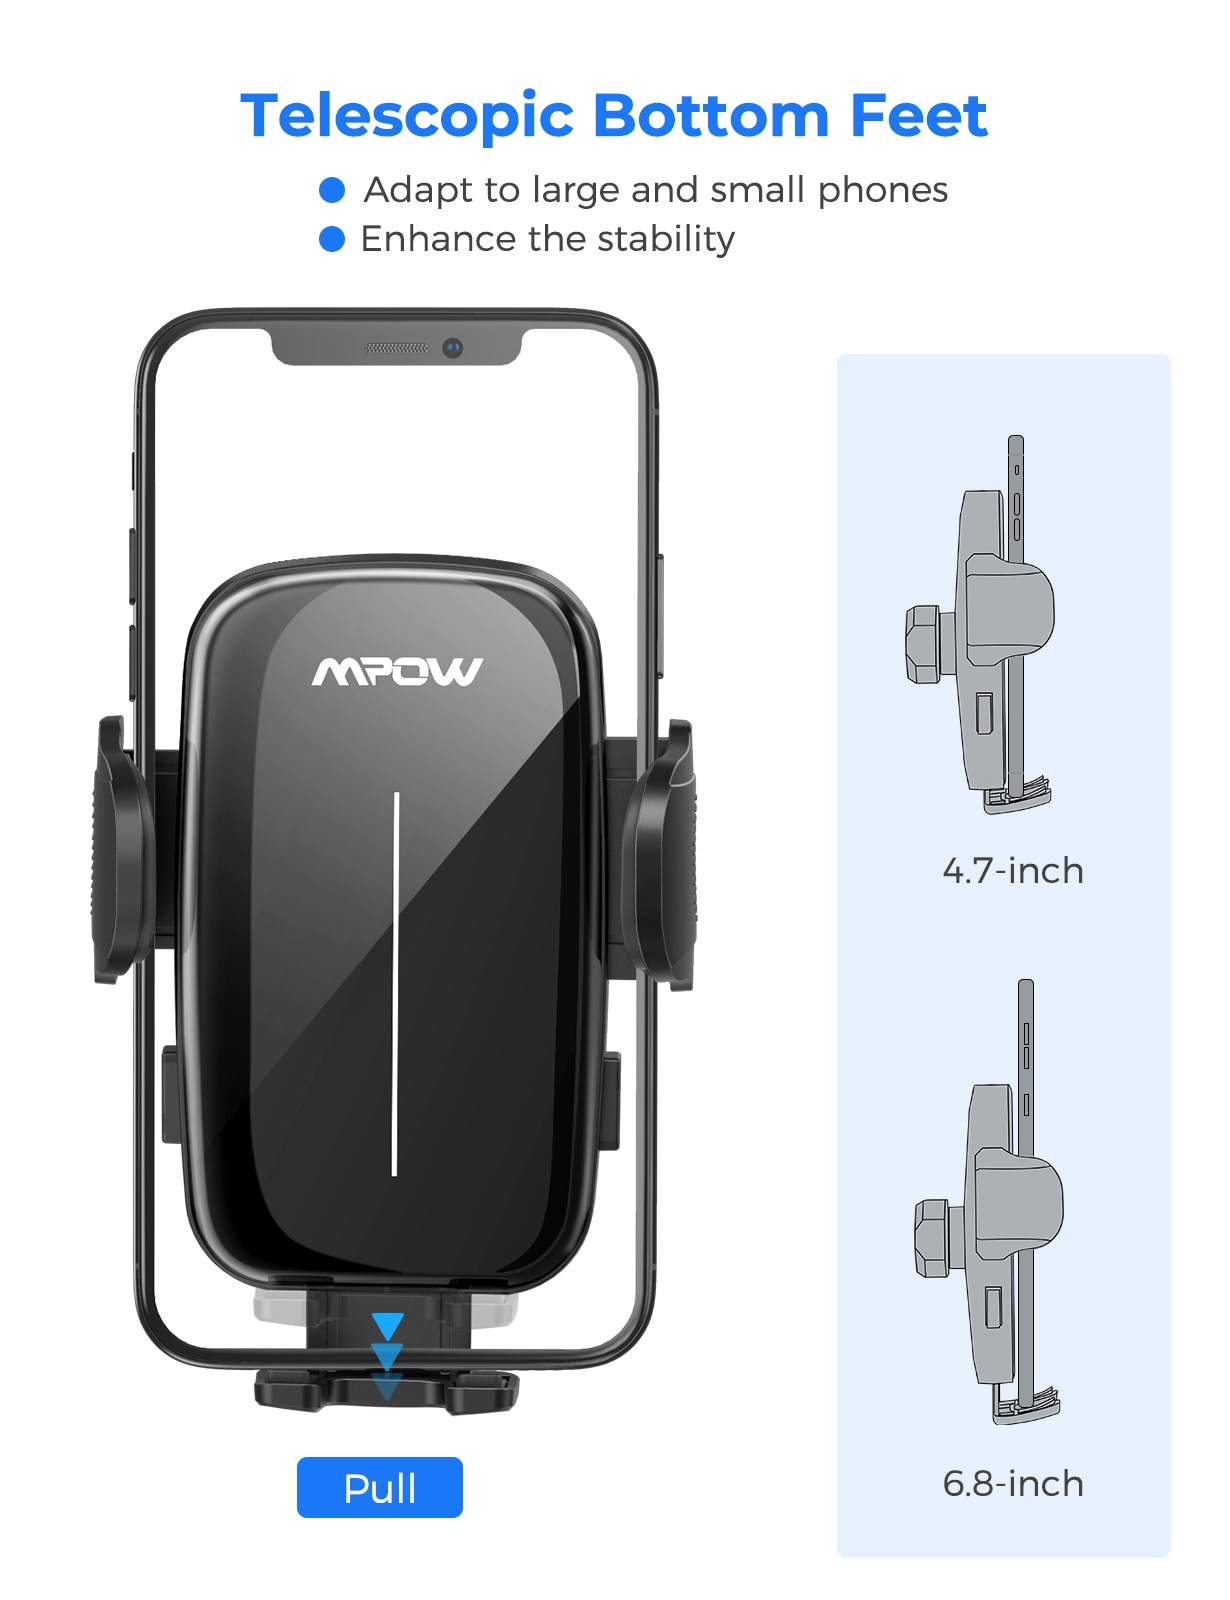 H9c91df387a3541239ef555738a41d675u - MPOW CA159 Upgraded Long Gooseneck Phone Holder for Car Windshield Car Phone Mount for iPhone SE 11 Pro Galaxy Note and More